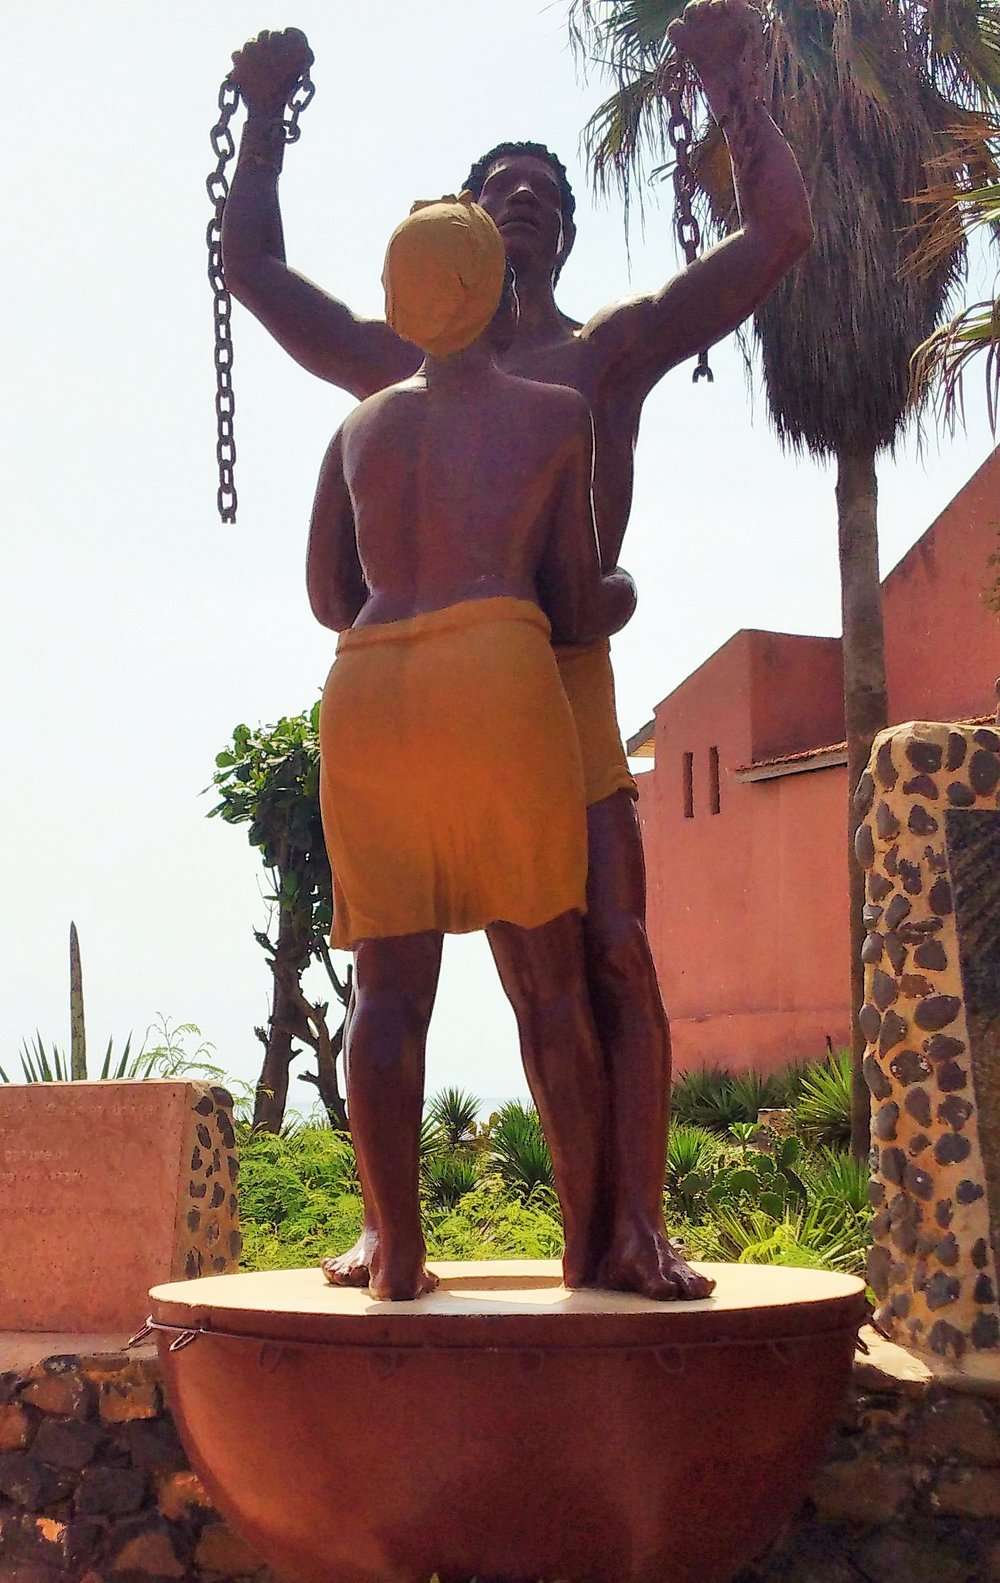 House of slaves | Goree Island